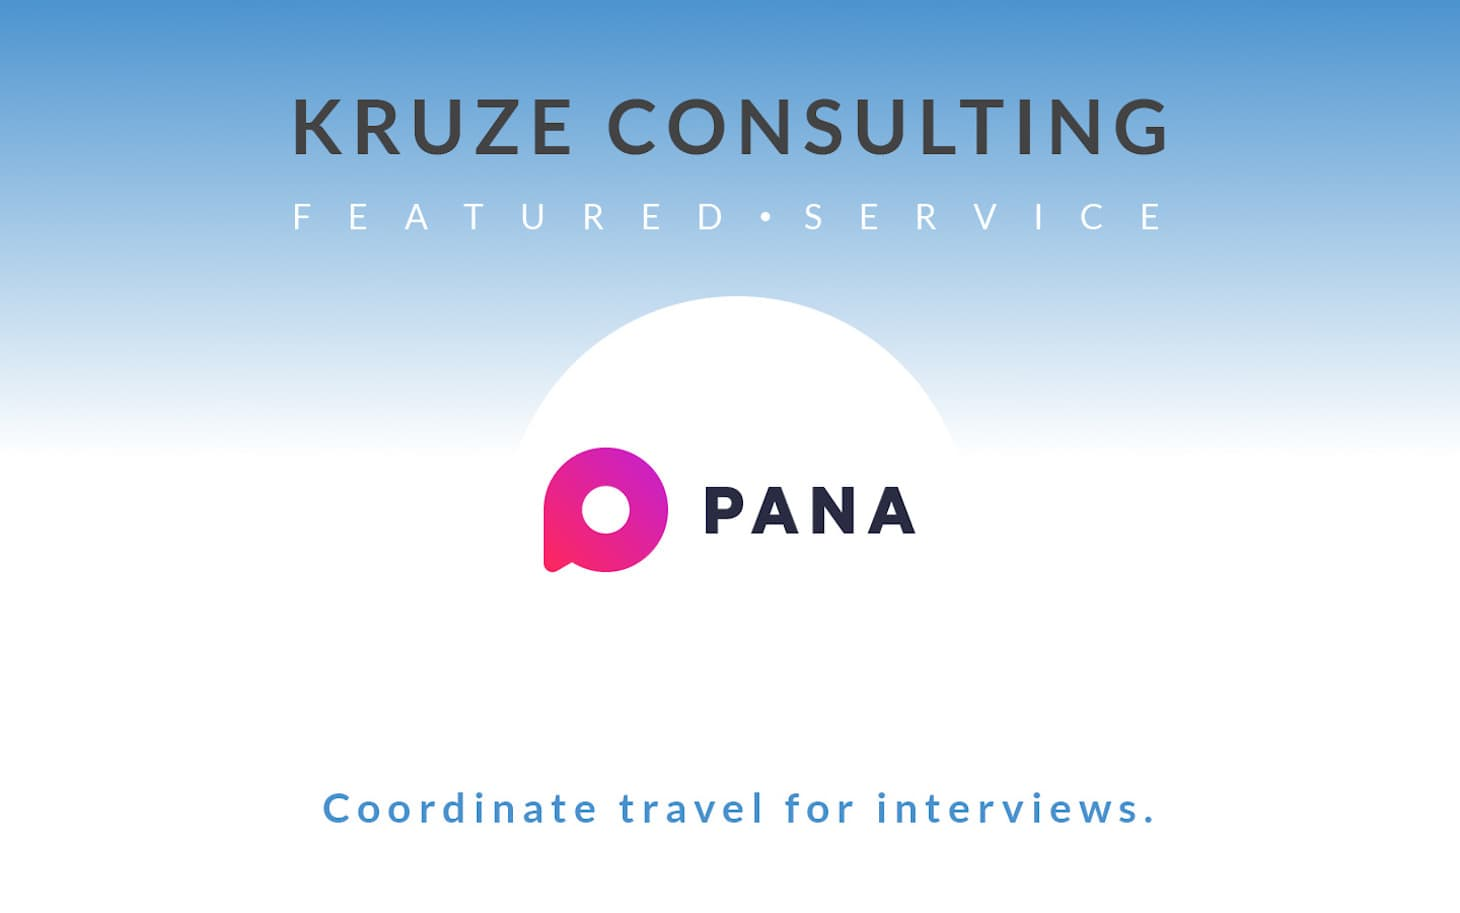 Featured Service - Pana